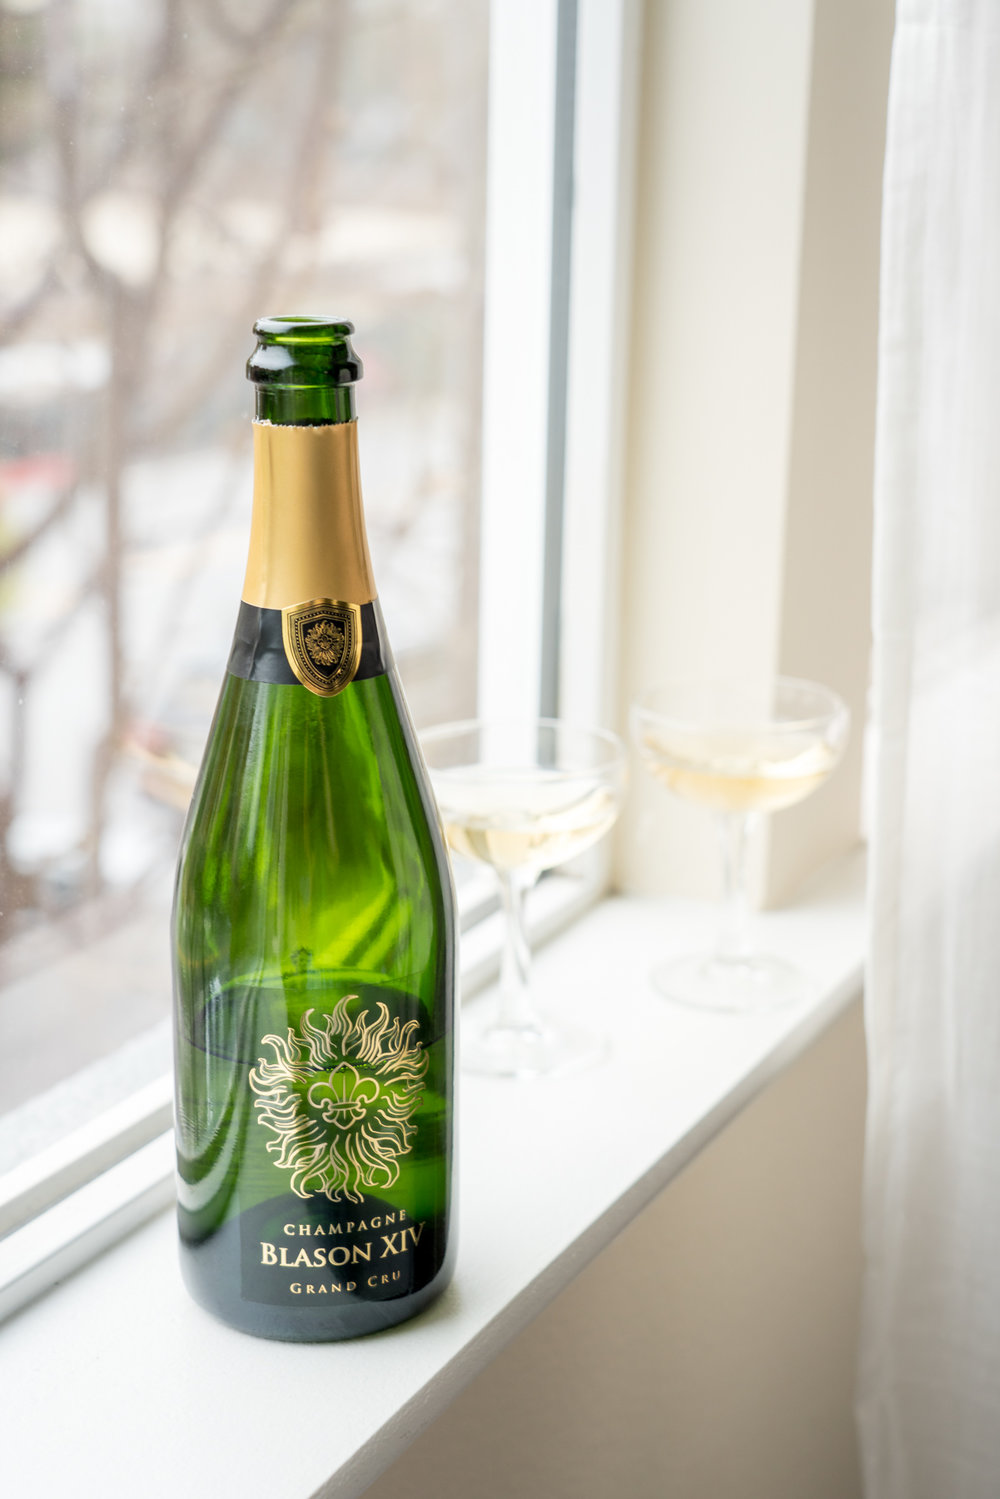 Blason Louis Champagne, a perfect ending to our brunch - Brunchographers' French-Inspired Wine Tasting Brunch